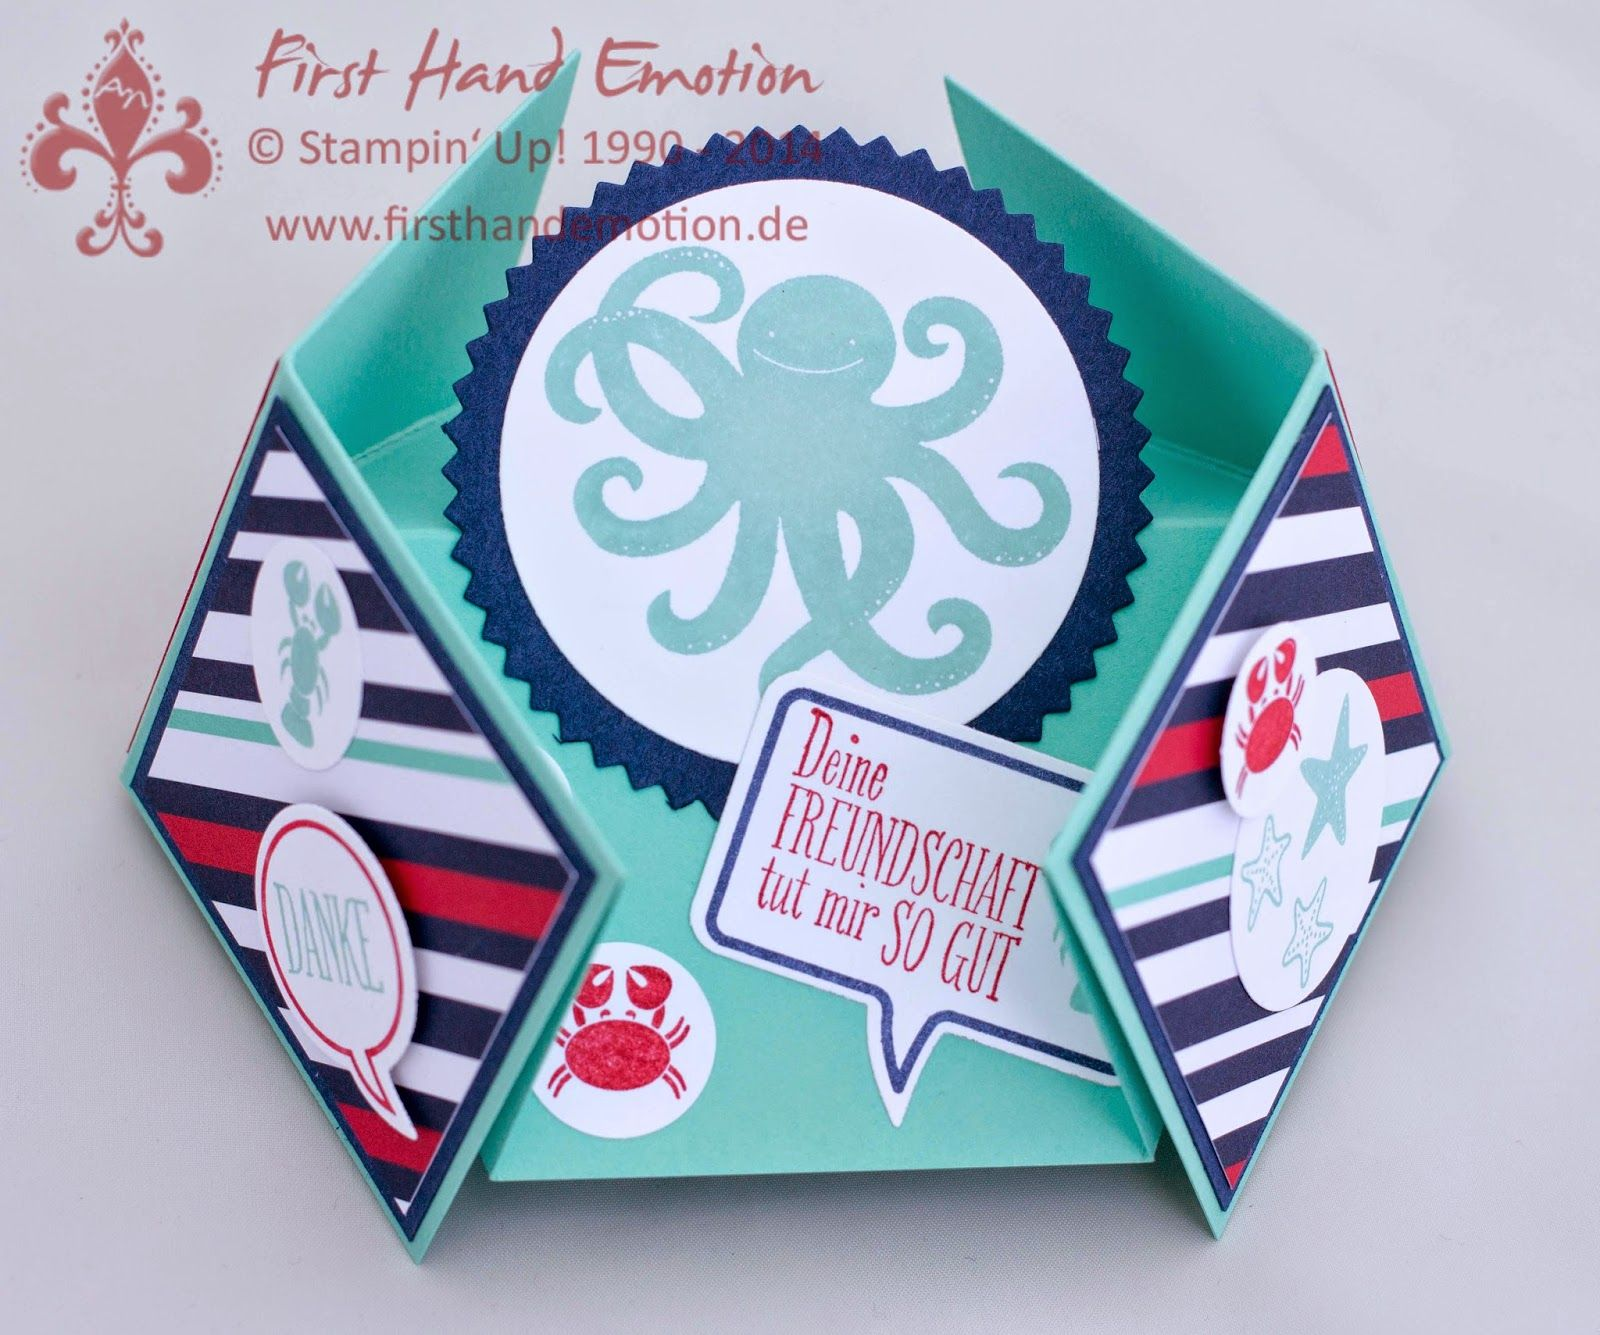 Stampin' Up! by First Hand Emotion: Diamantgefaltete Sea-Street-Krake